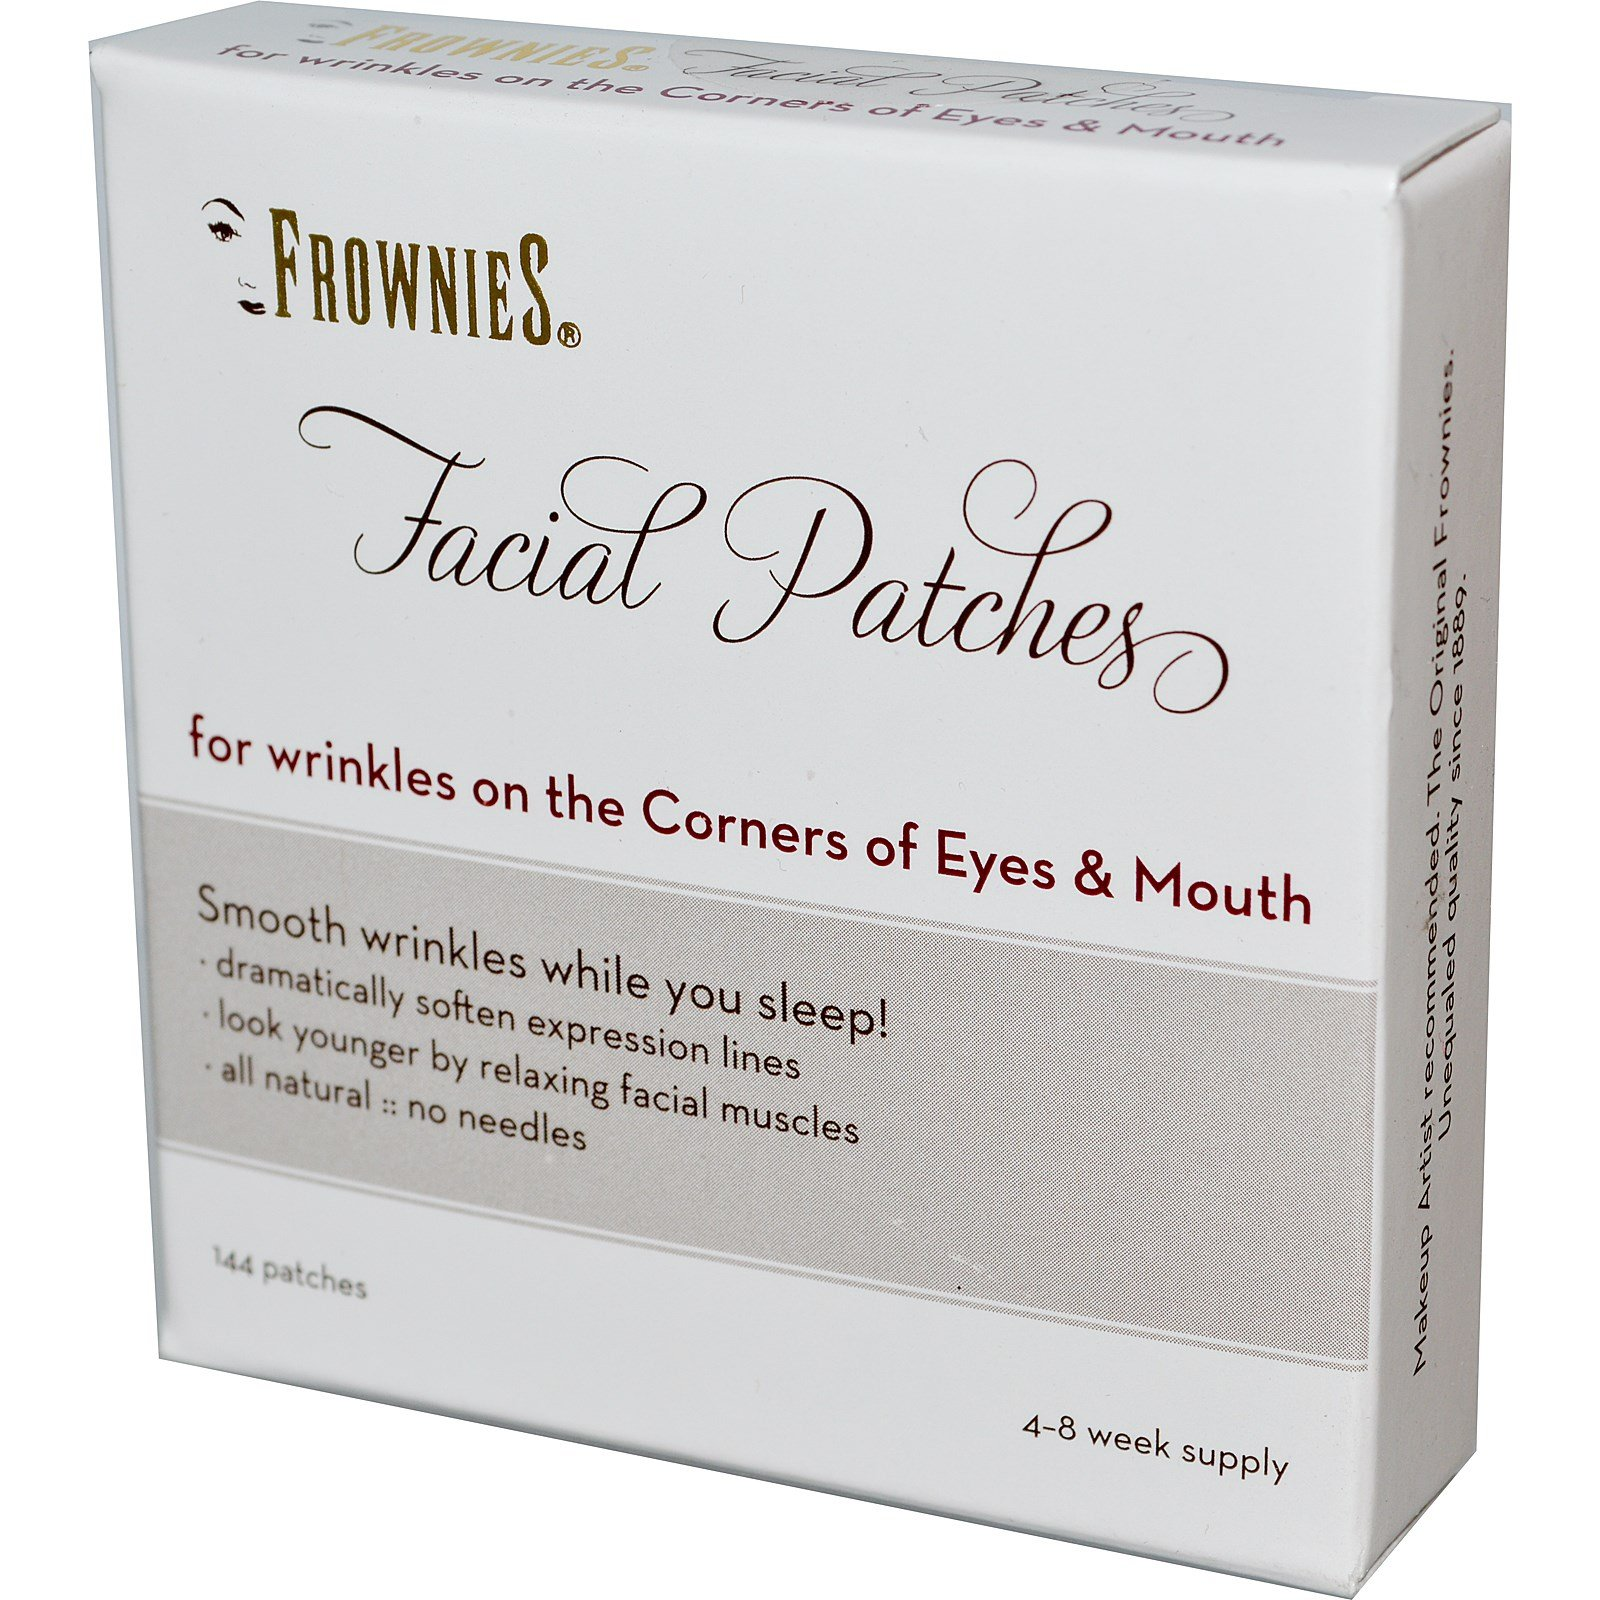 Frownies, Facial Patches, Corners of Eyes & Mouth, 144 Patches - 2pc by Frownies (Image #1)